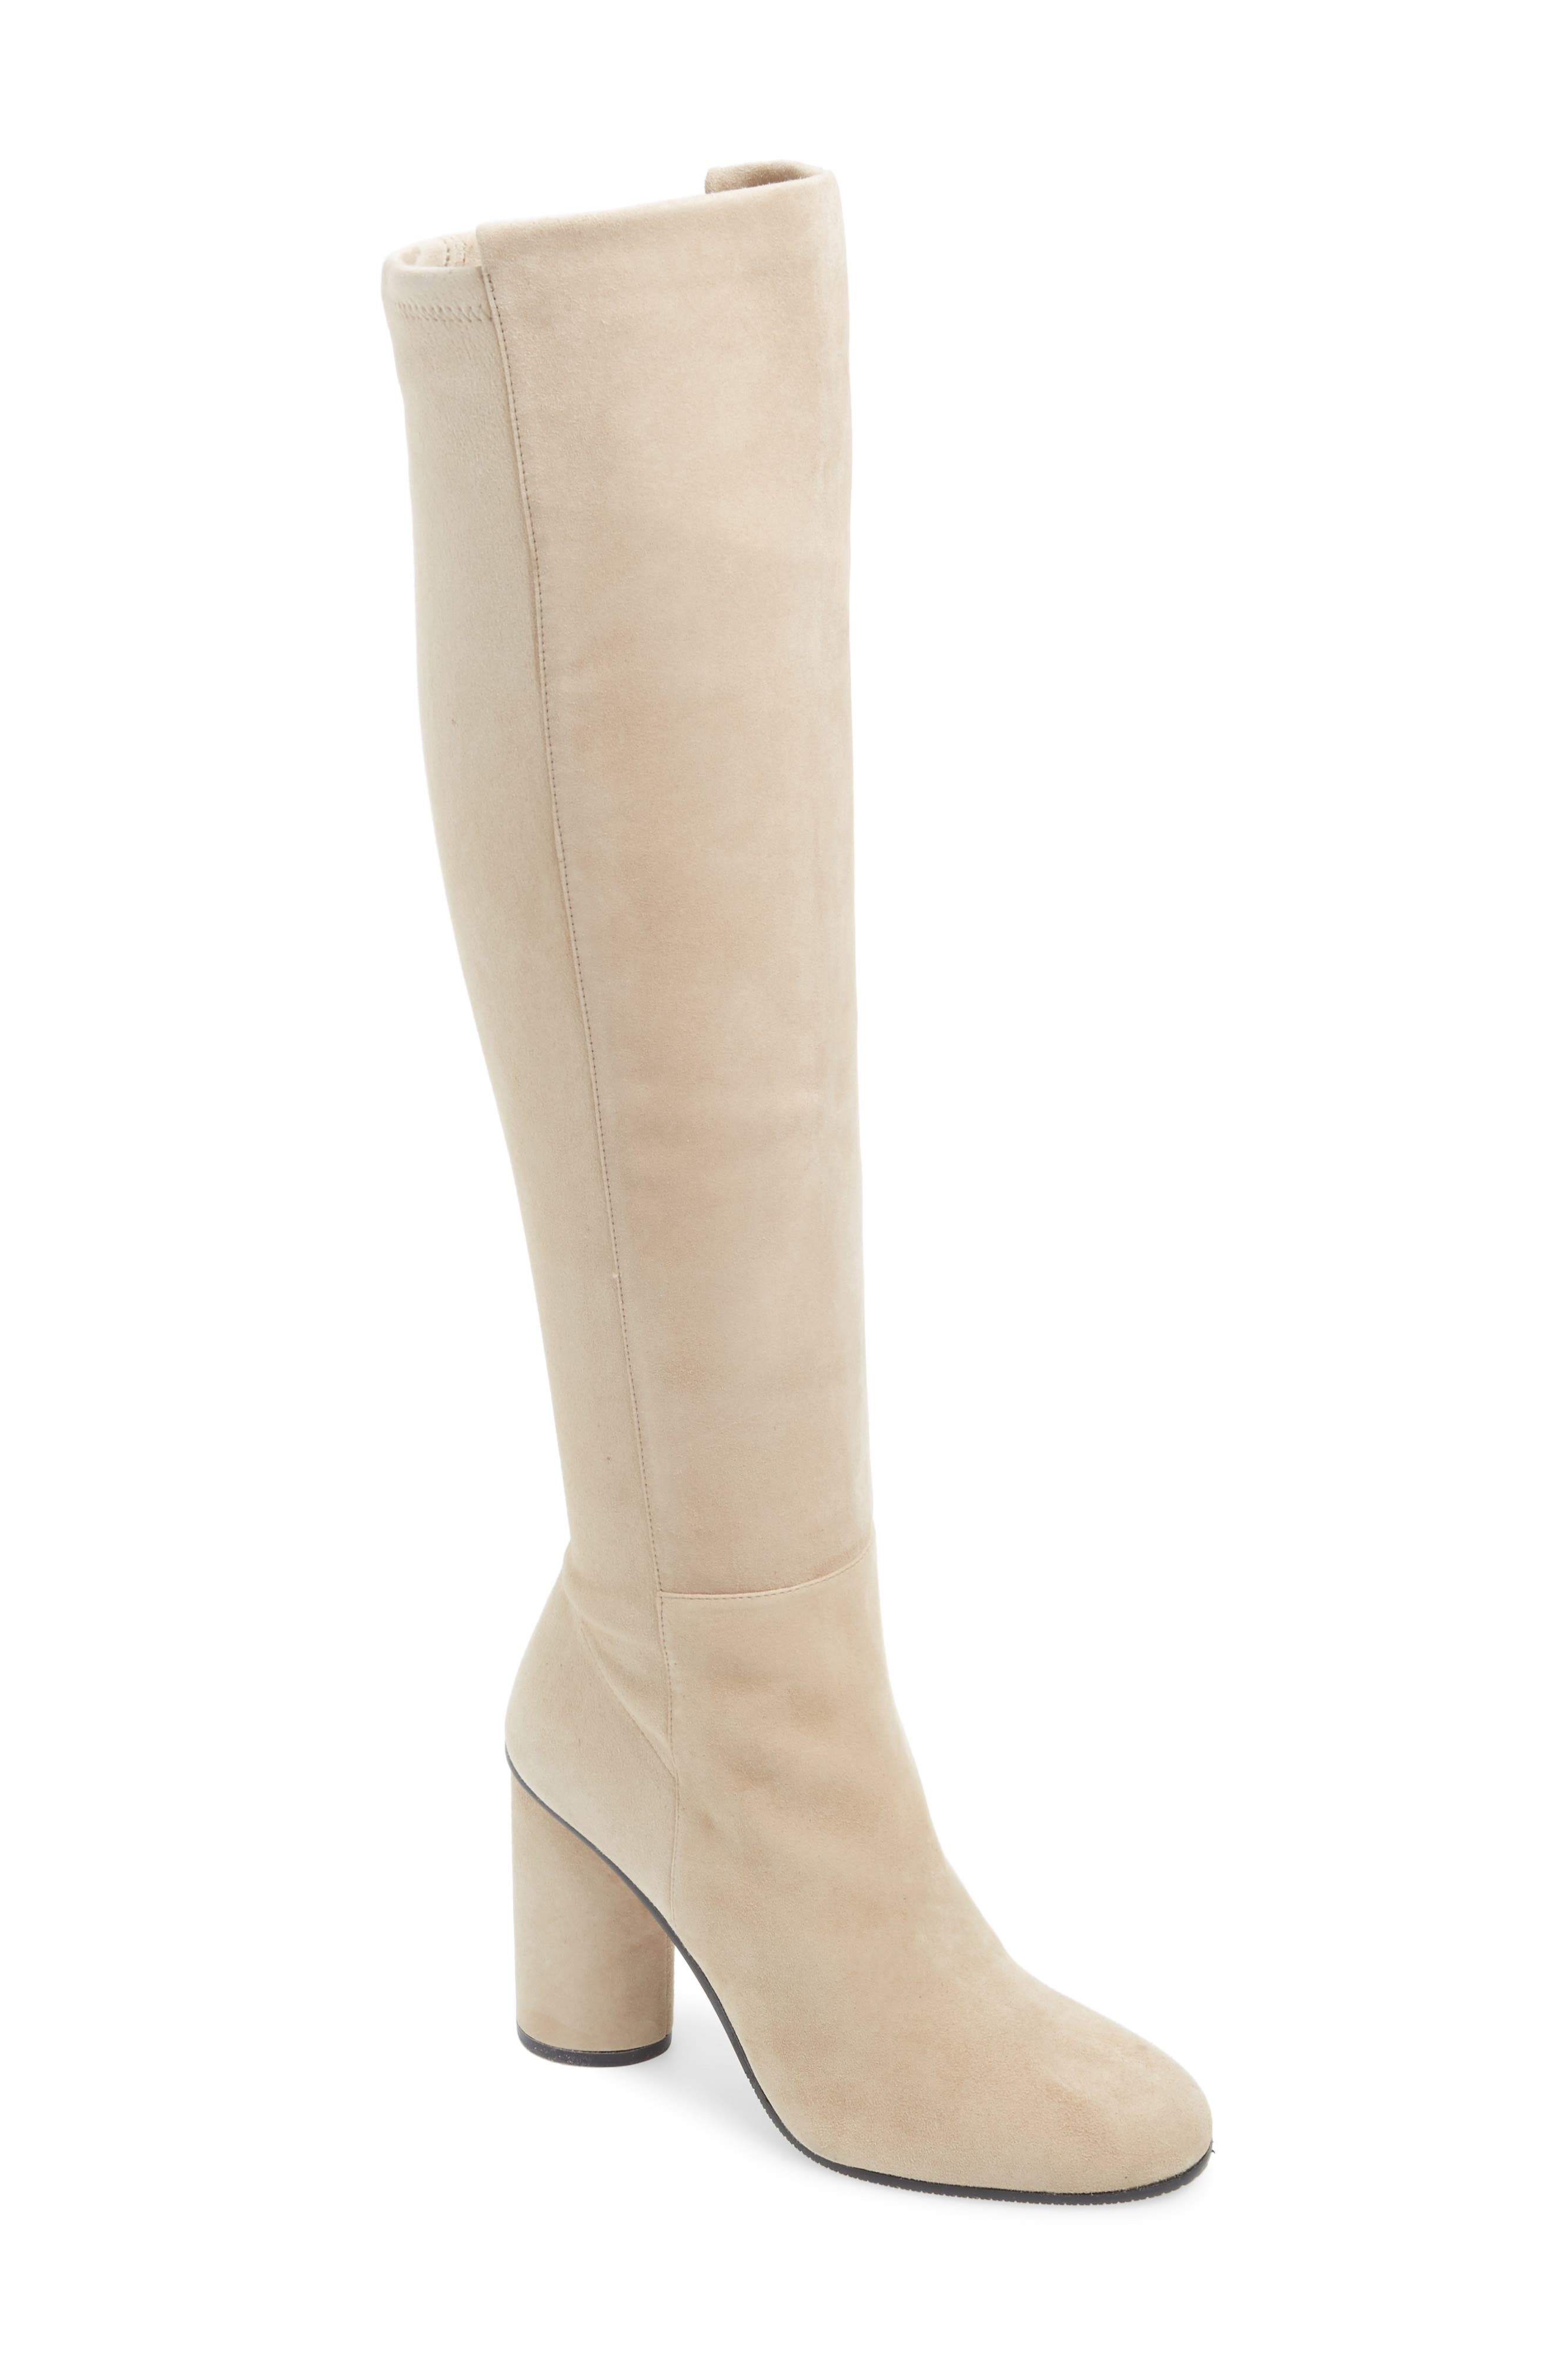 Eloise Over the Knee Boot,                             Main thumbnail 1, color,                             BROWNSTONE SUEDE